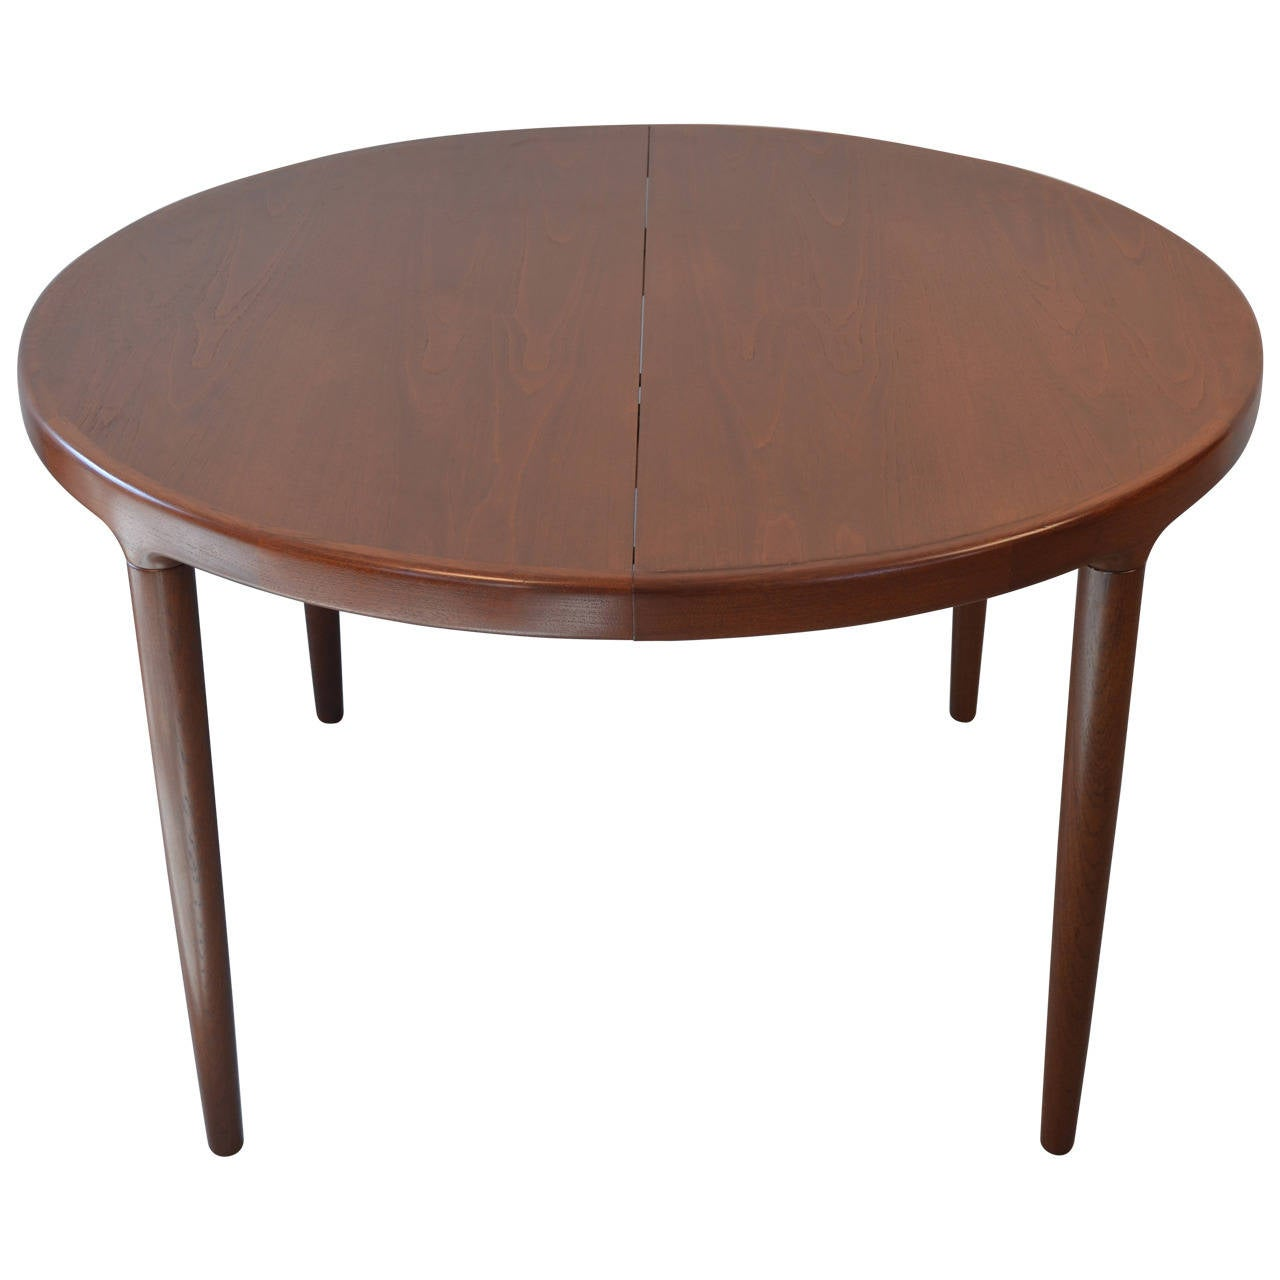 Round dining table with two leaves for sale at 1stdibs for Dining room tables with leaves